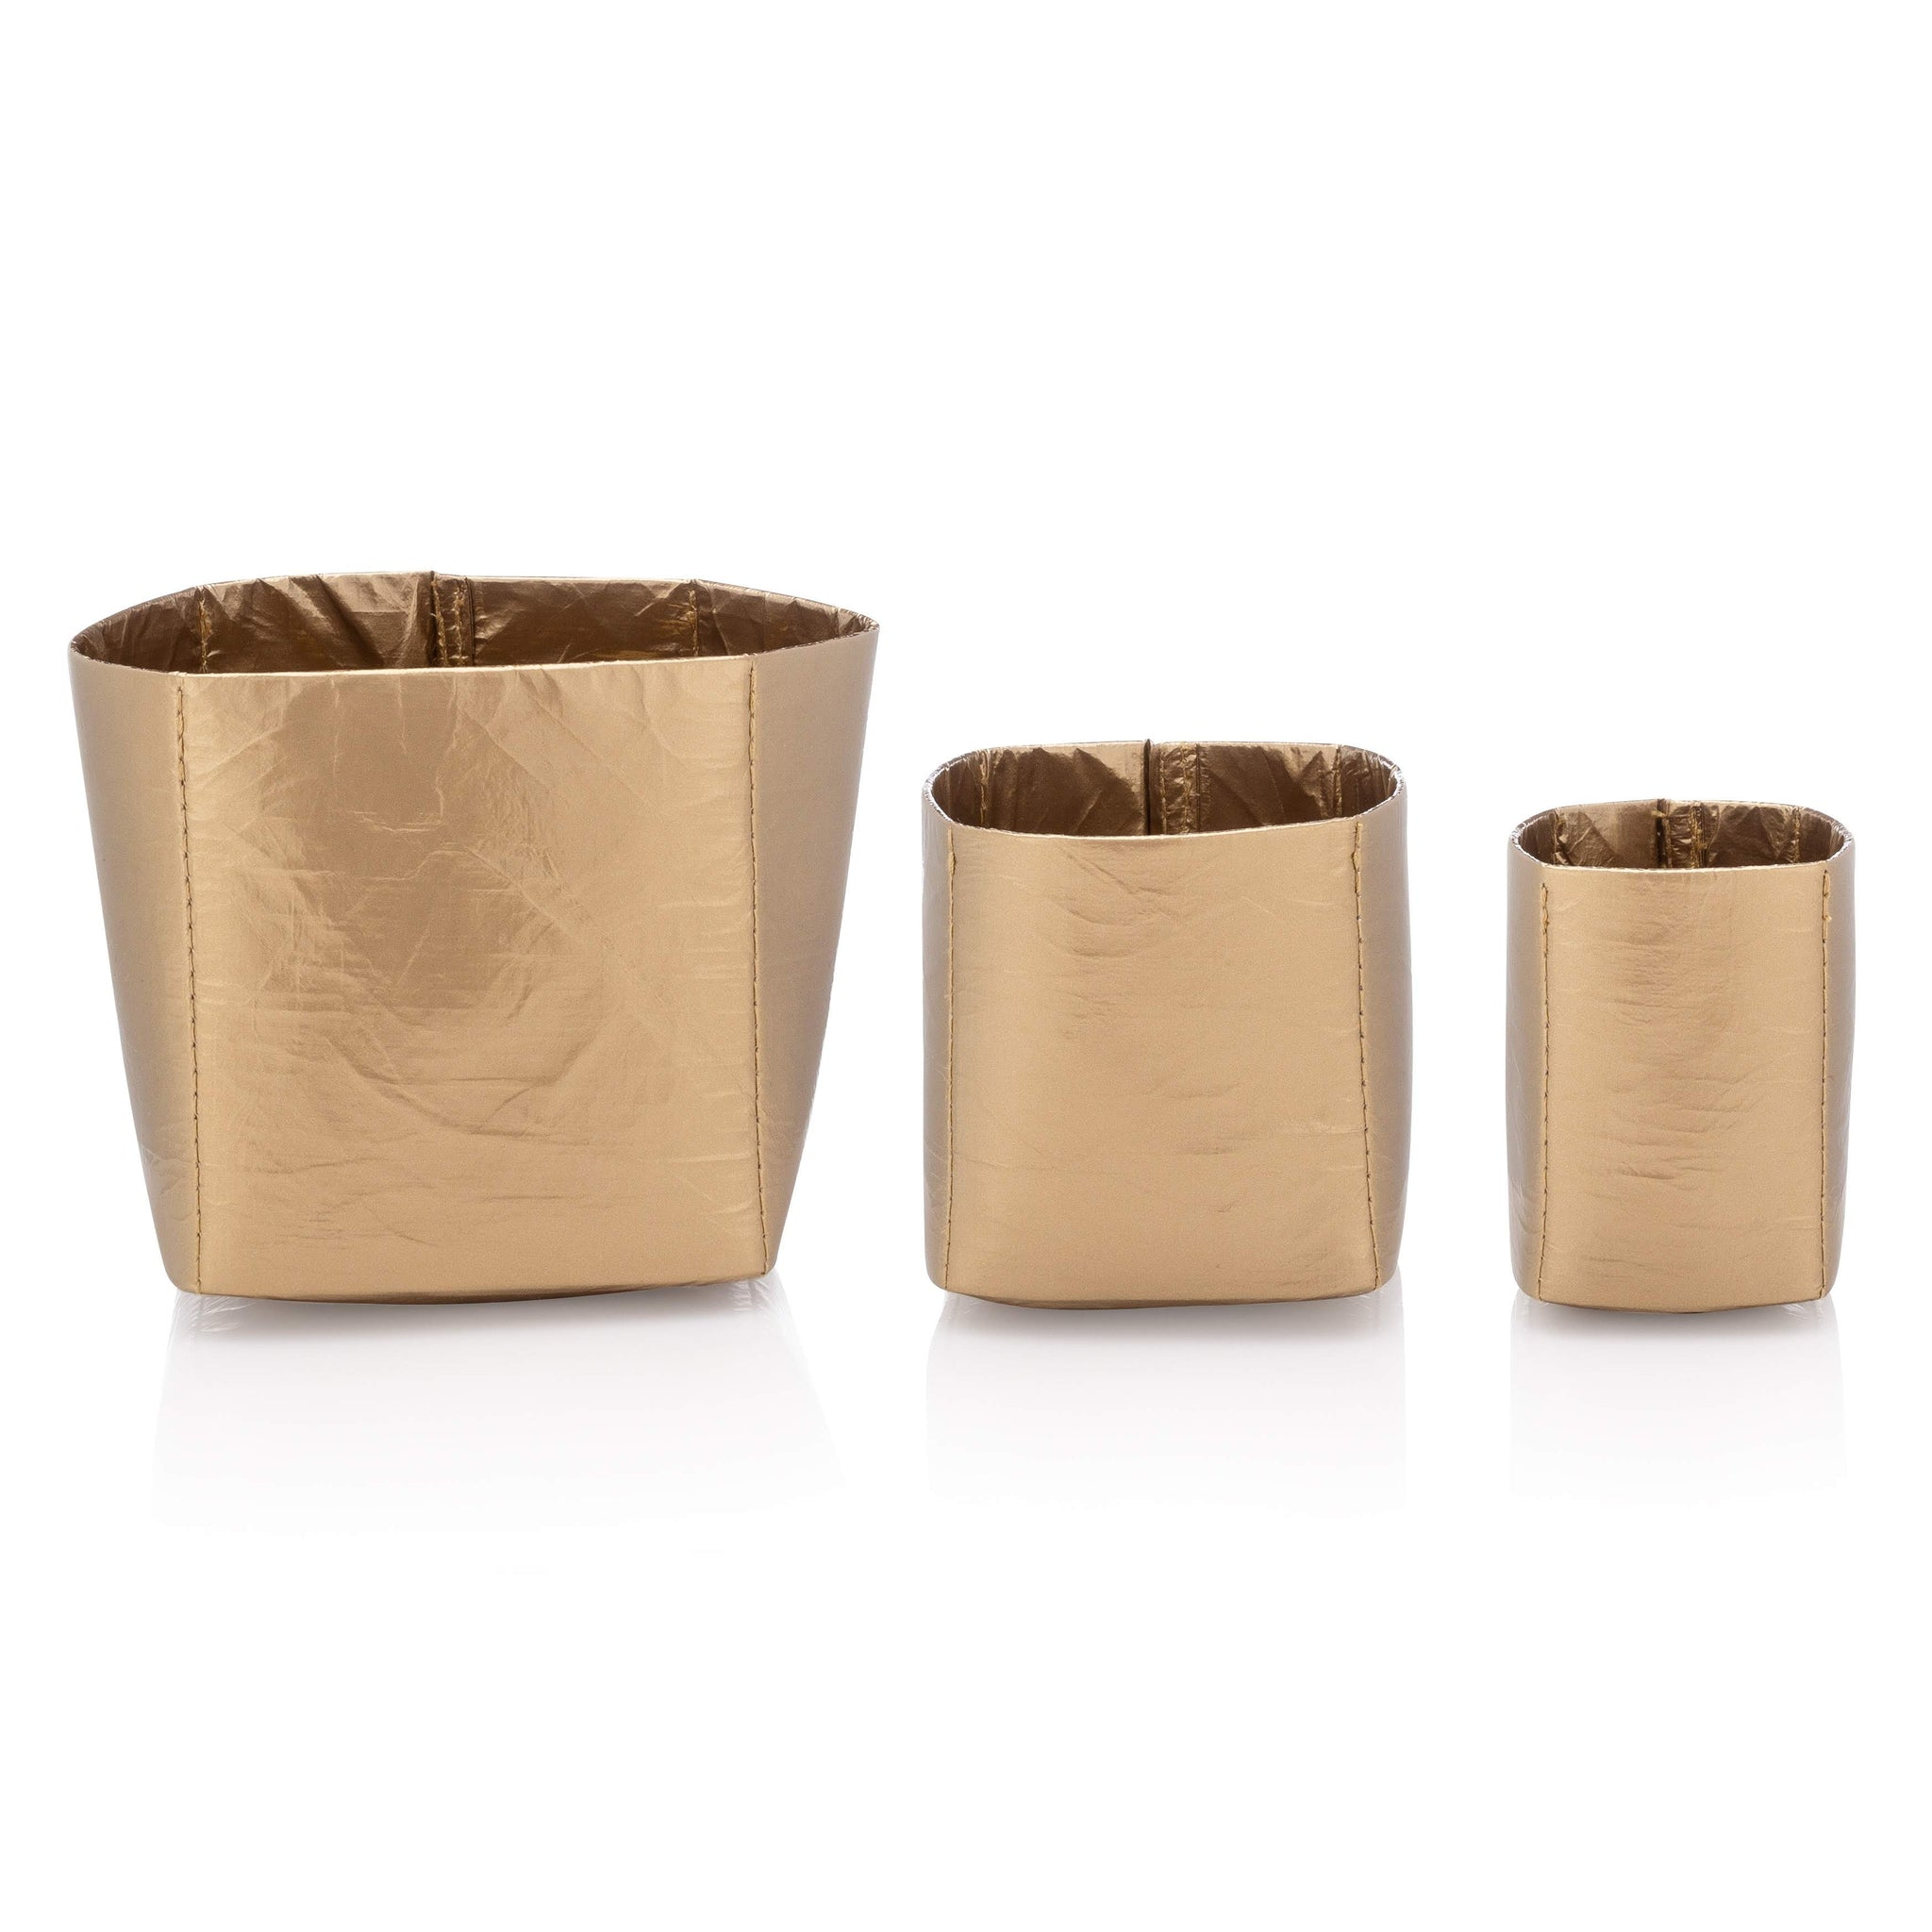 Desk Organizers - Cup Trio - Metallic Shiny Gold Cup Set